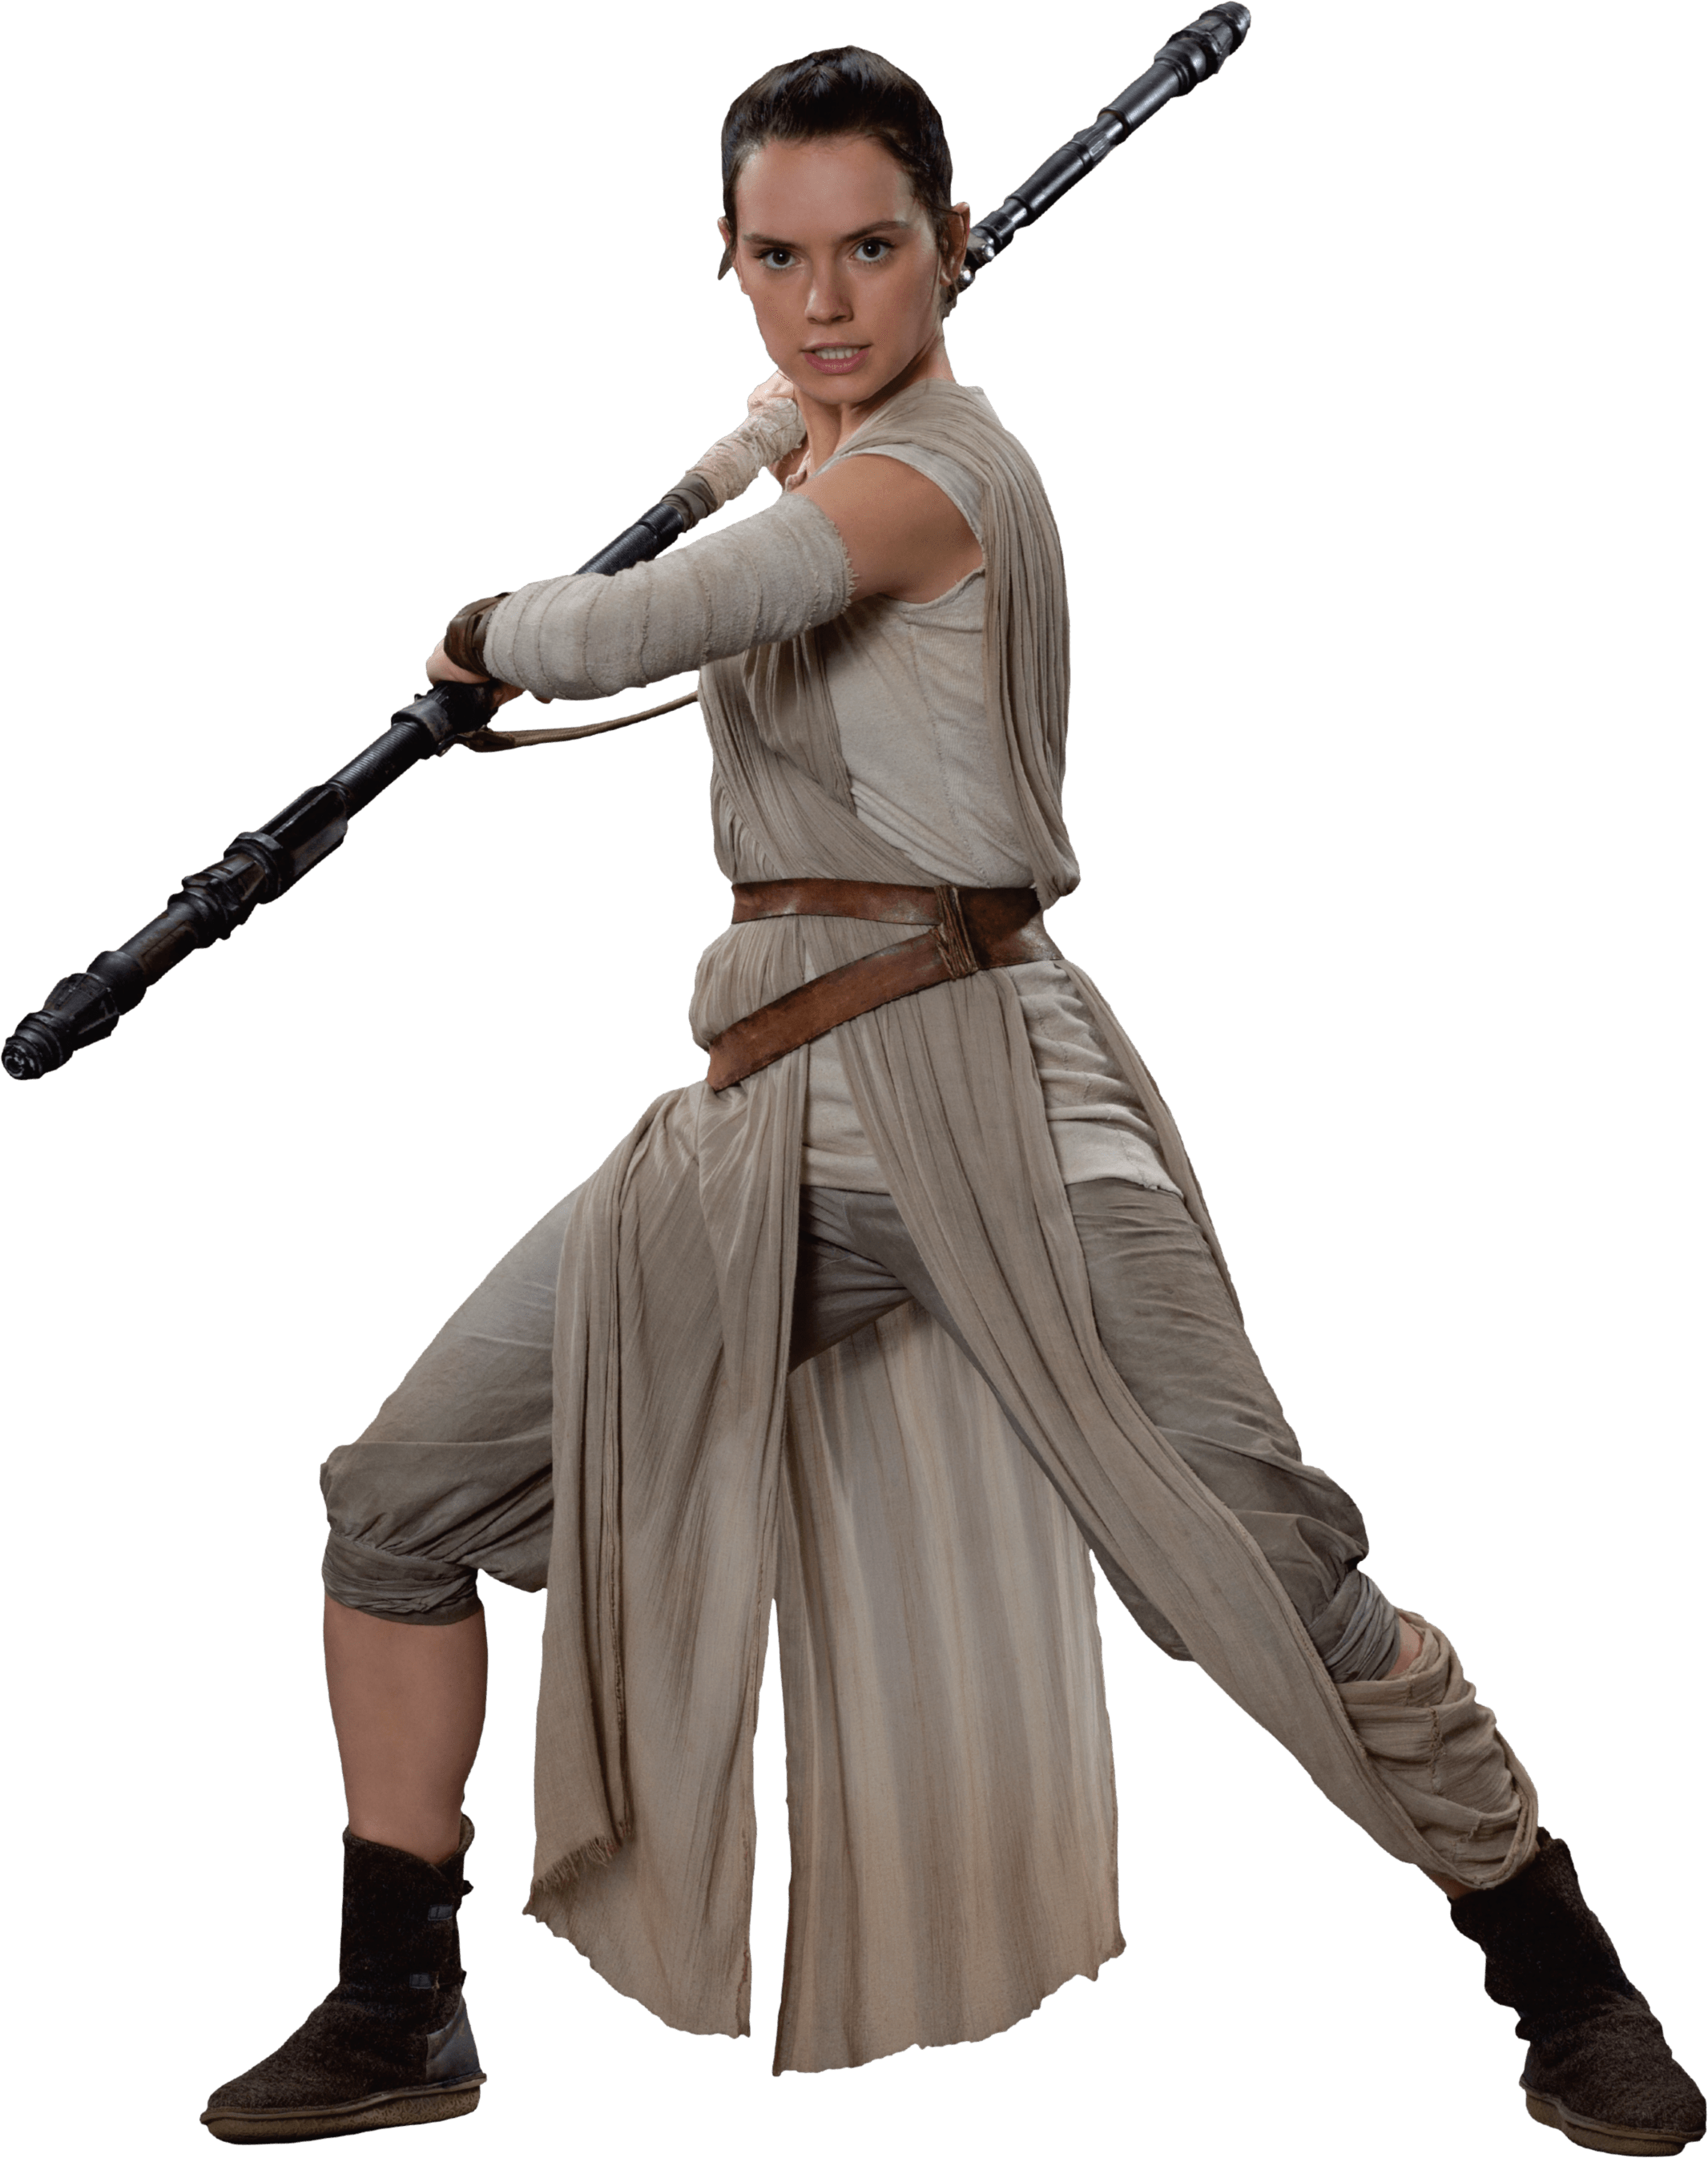 Star wars skywalker transparent. Starwars clipart rey